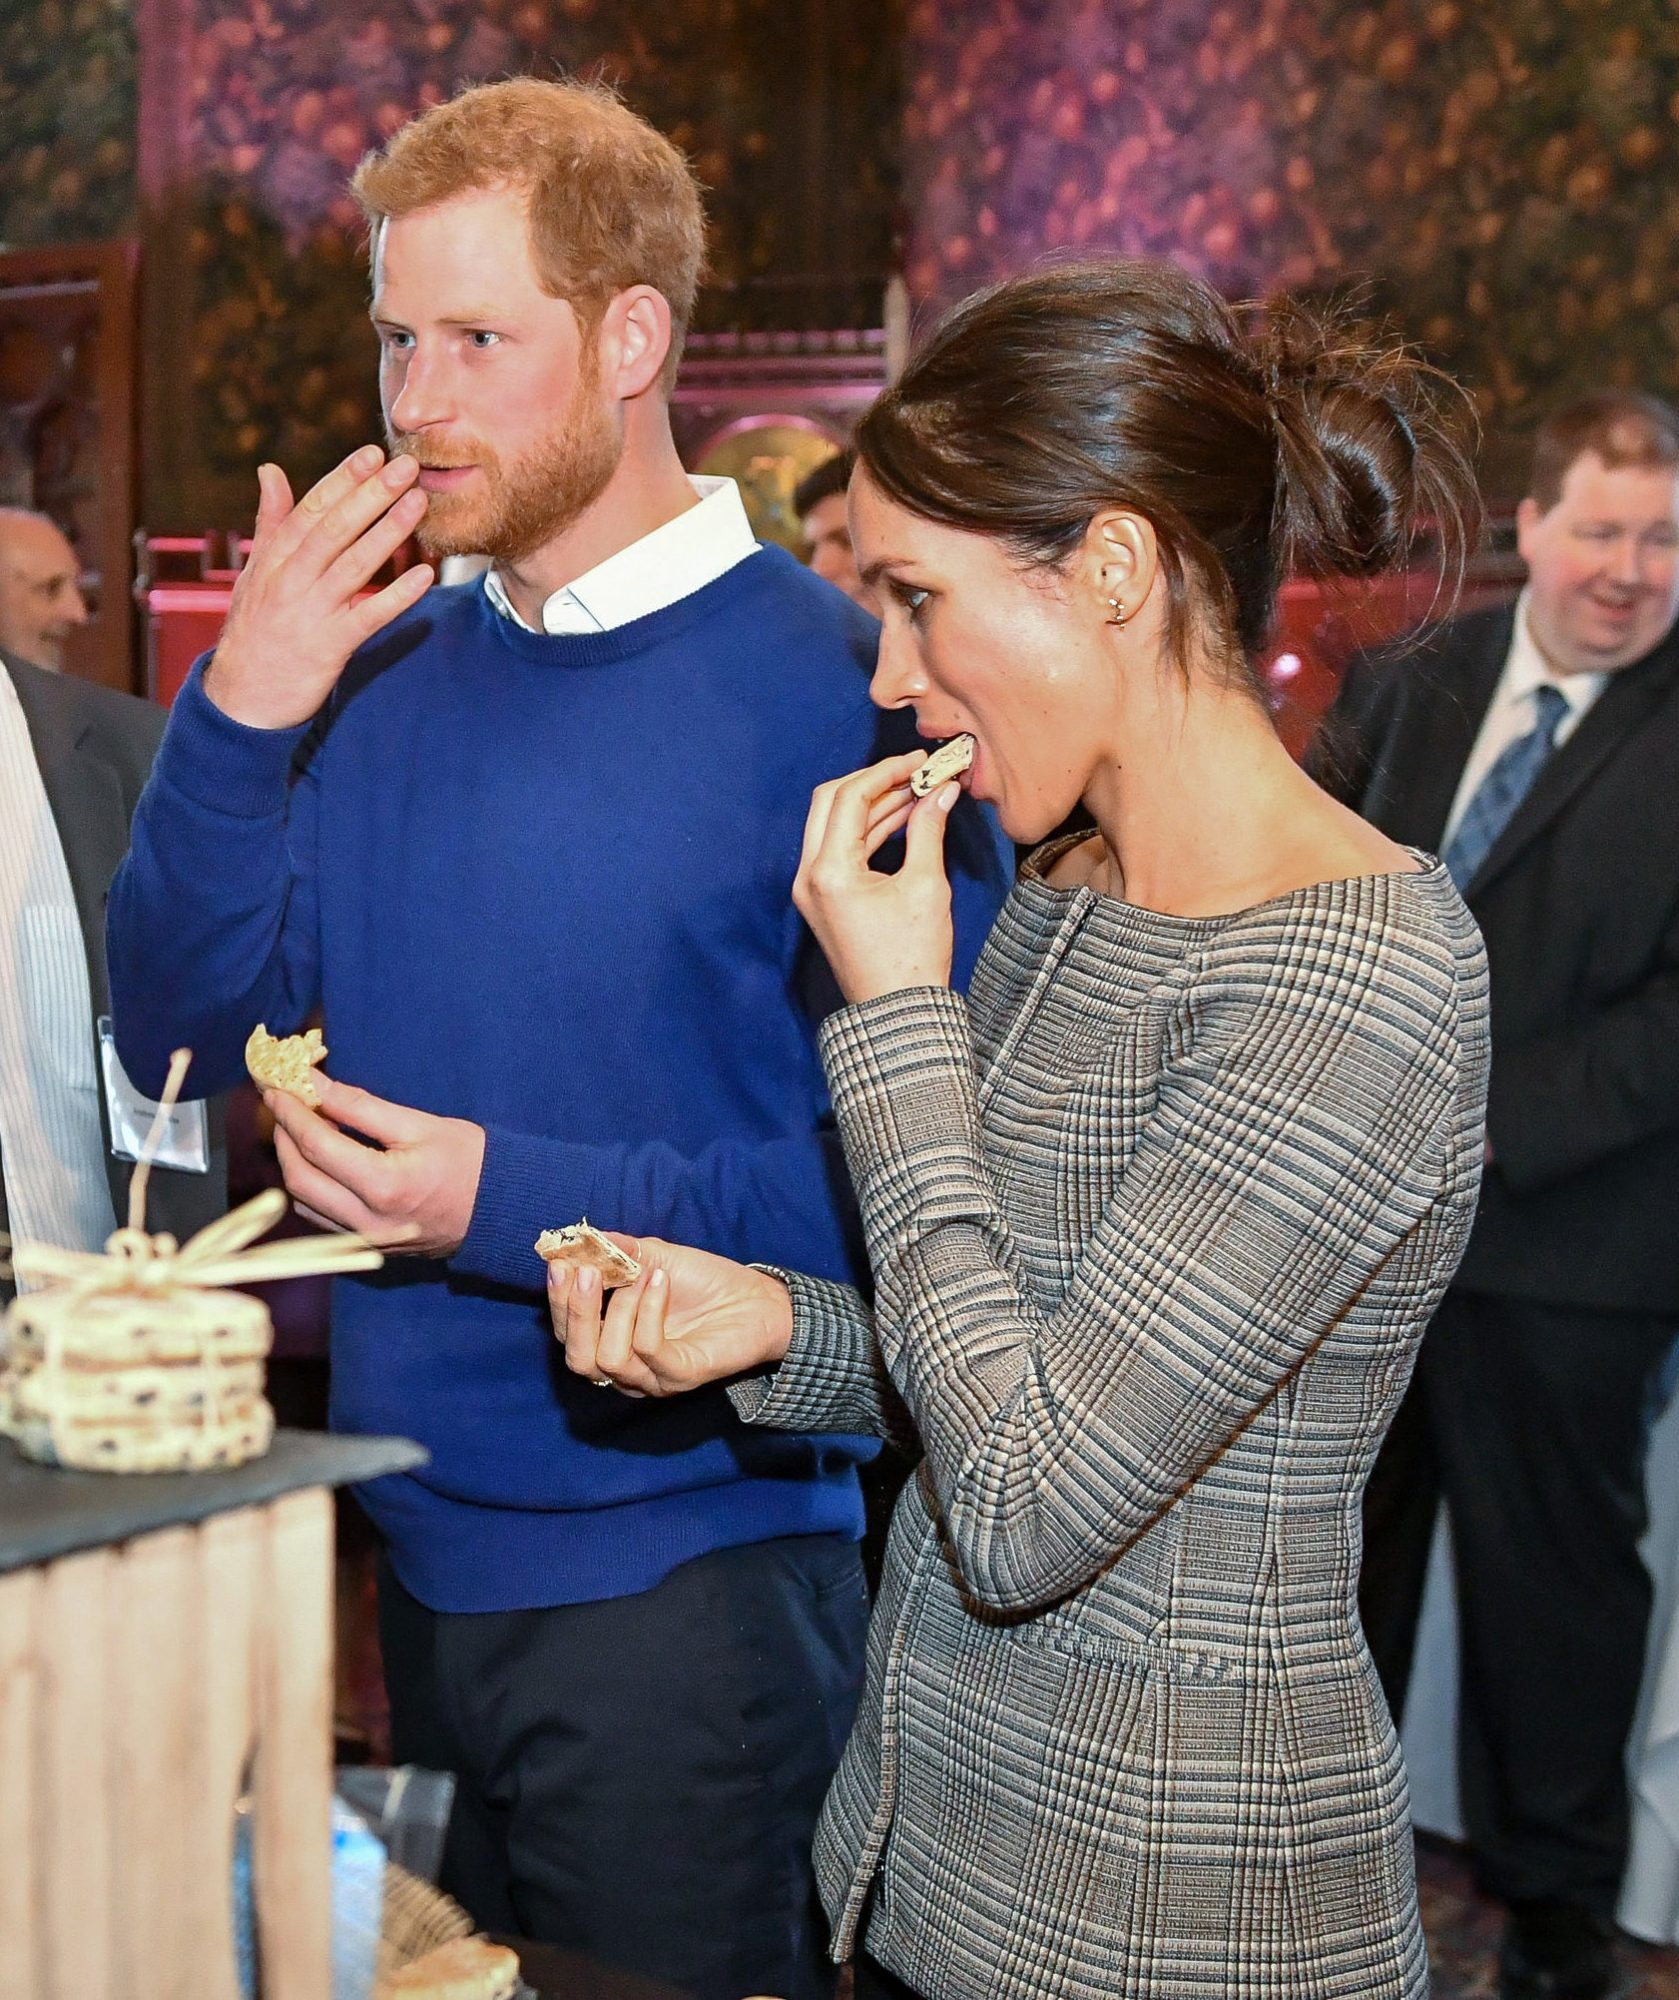 Surprising Nobody, Prince Harry and Meghan Markle Have Chosen a NontraditionalWedding Cake